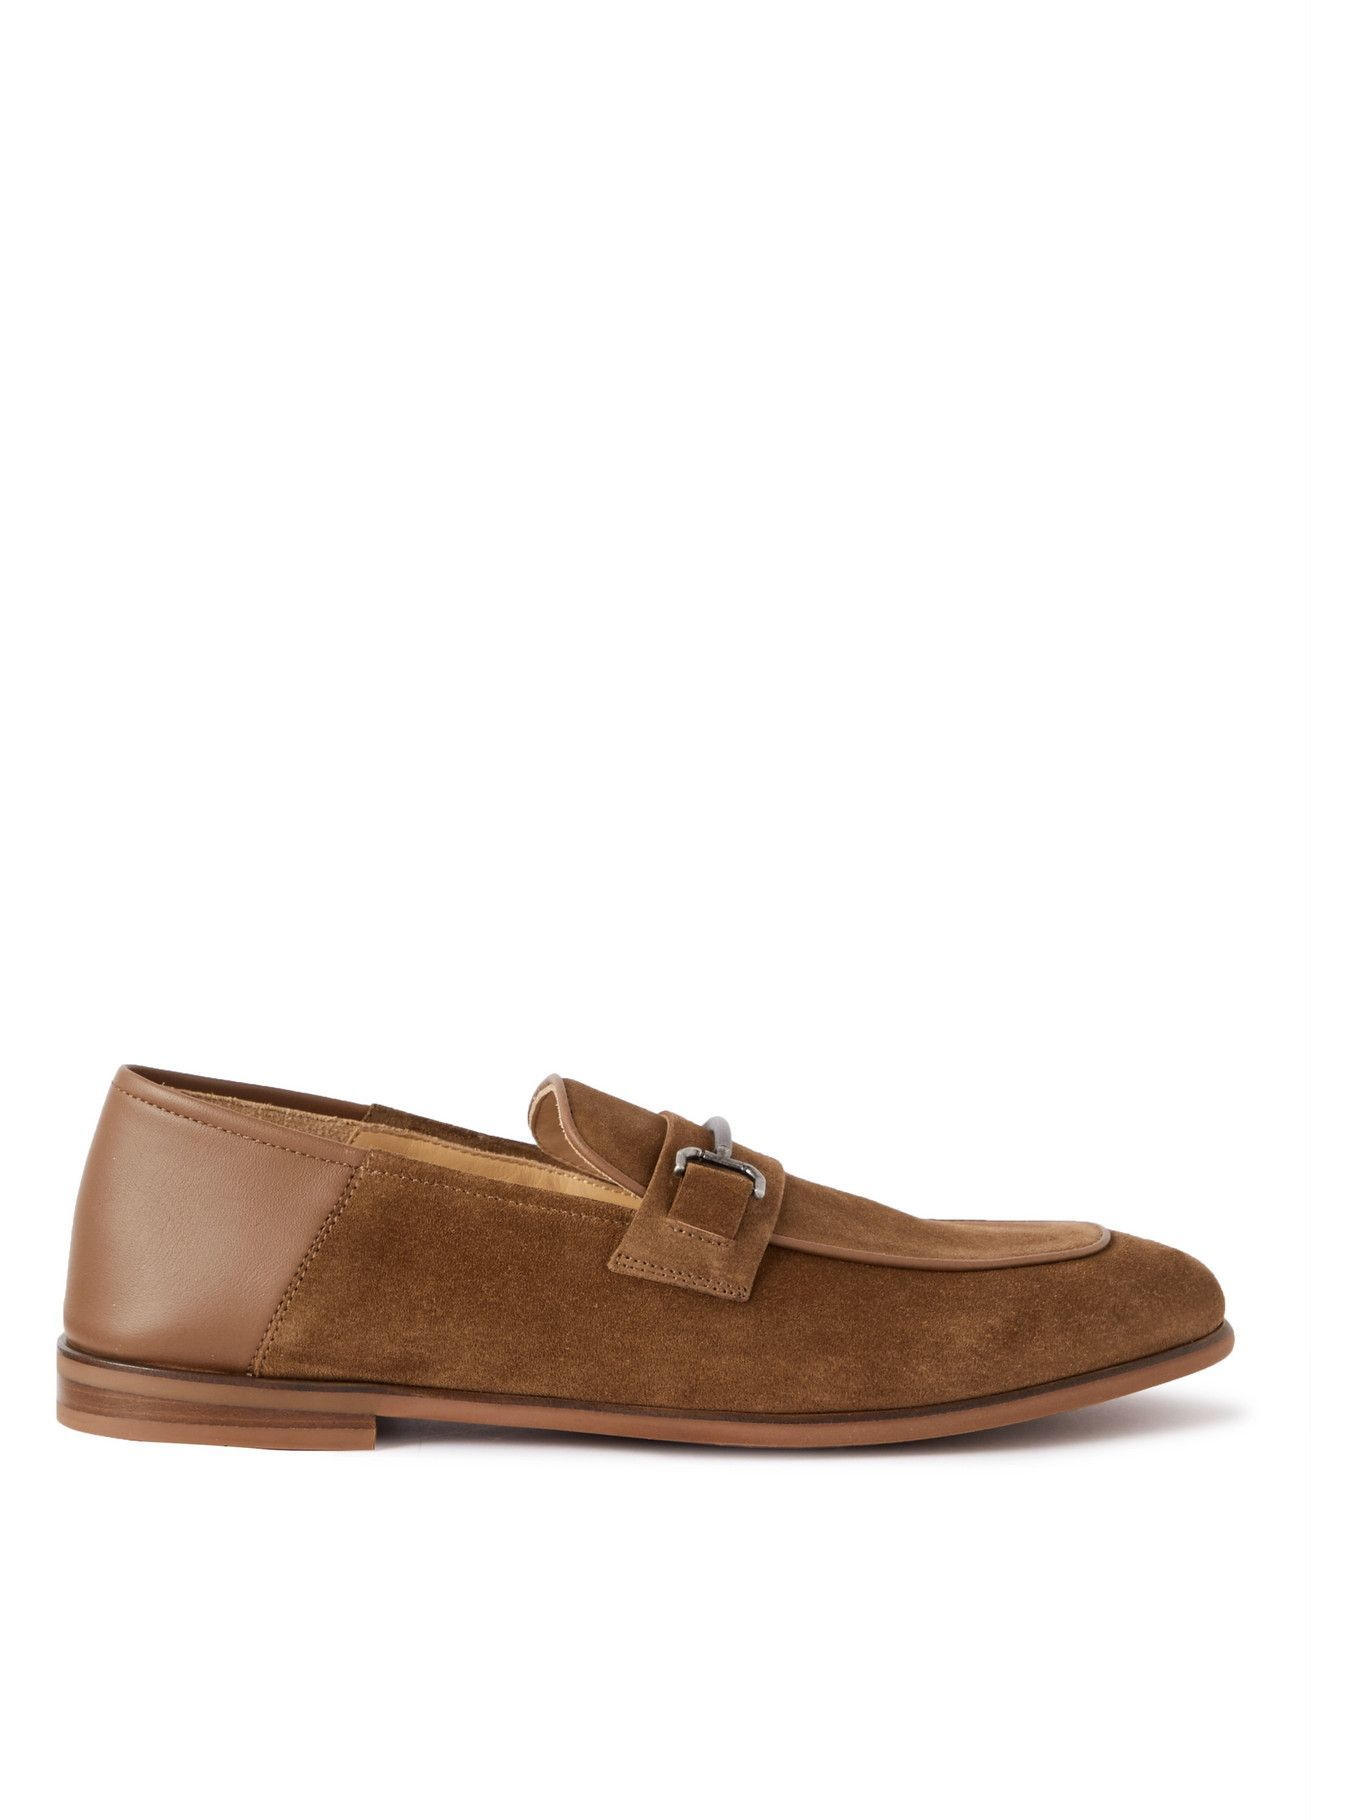 DUNHILL - Chiltern Suede and Leather Loafers - Brown